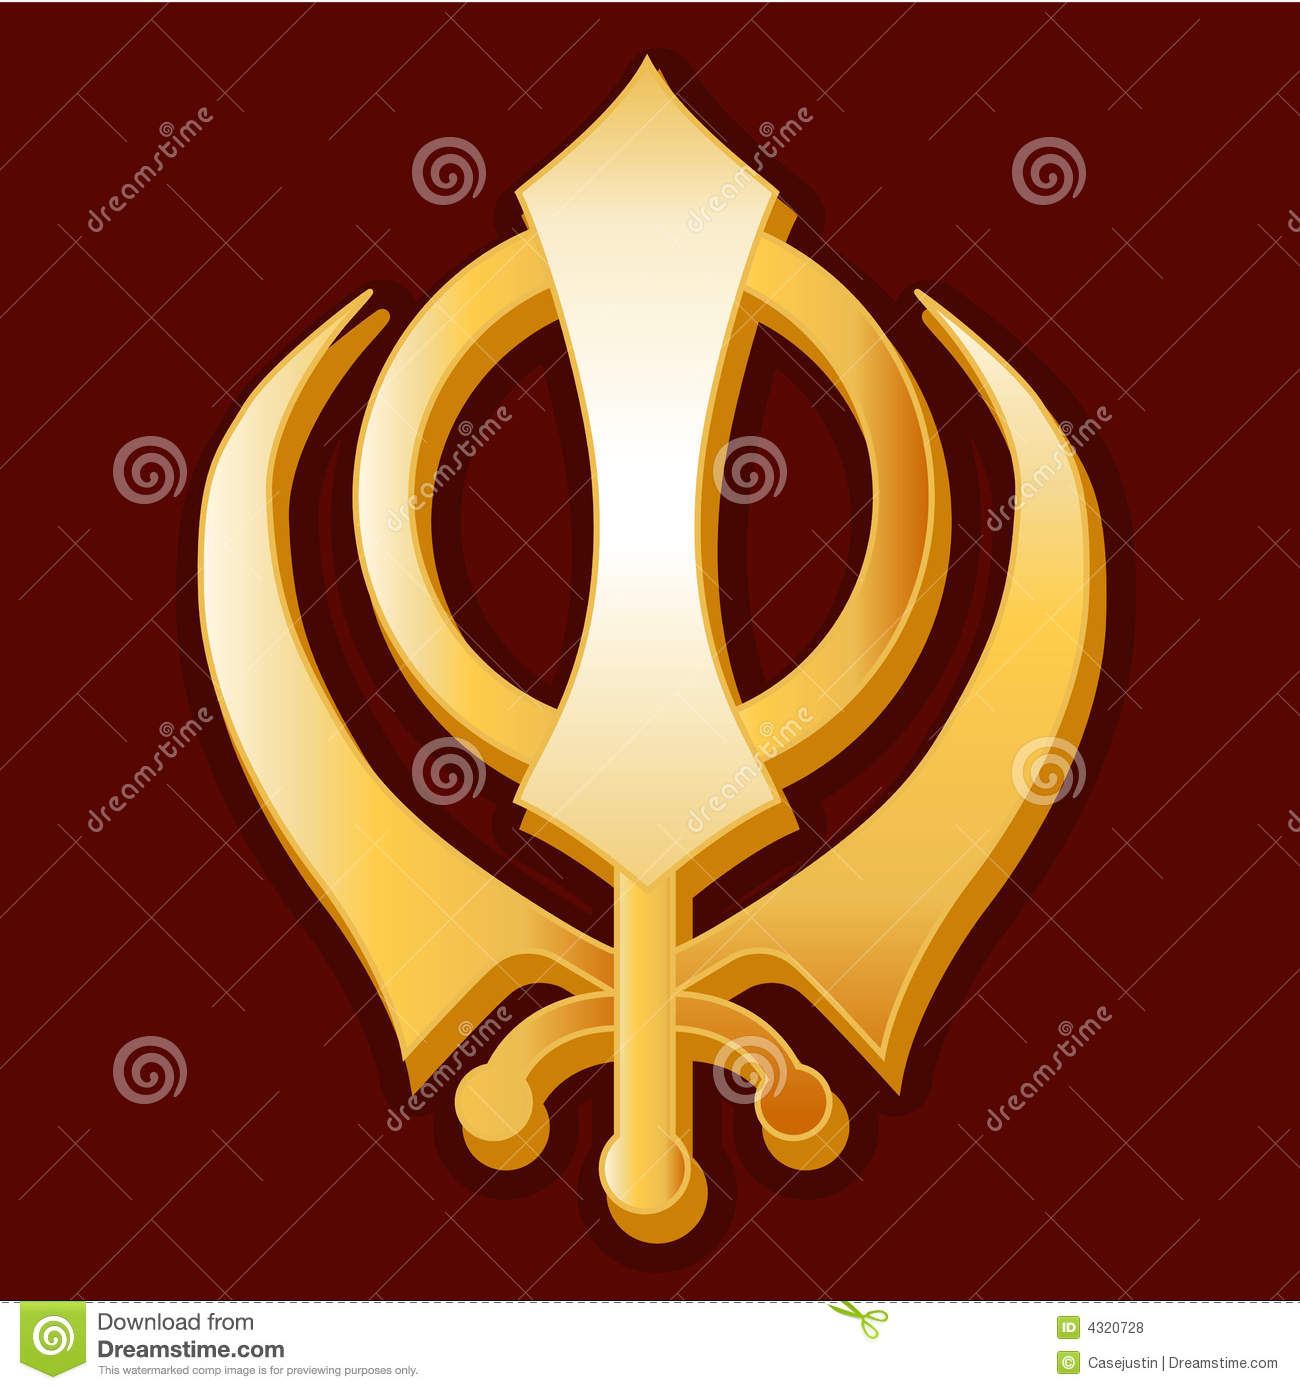 3d Khanda Wallpaper Sikh Symbol Royalty Free Stock Photos Image 4320728